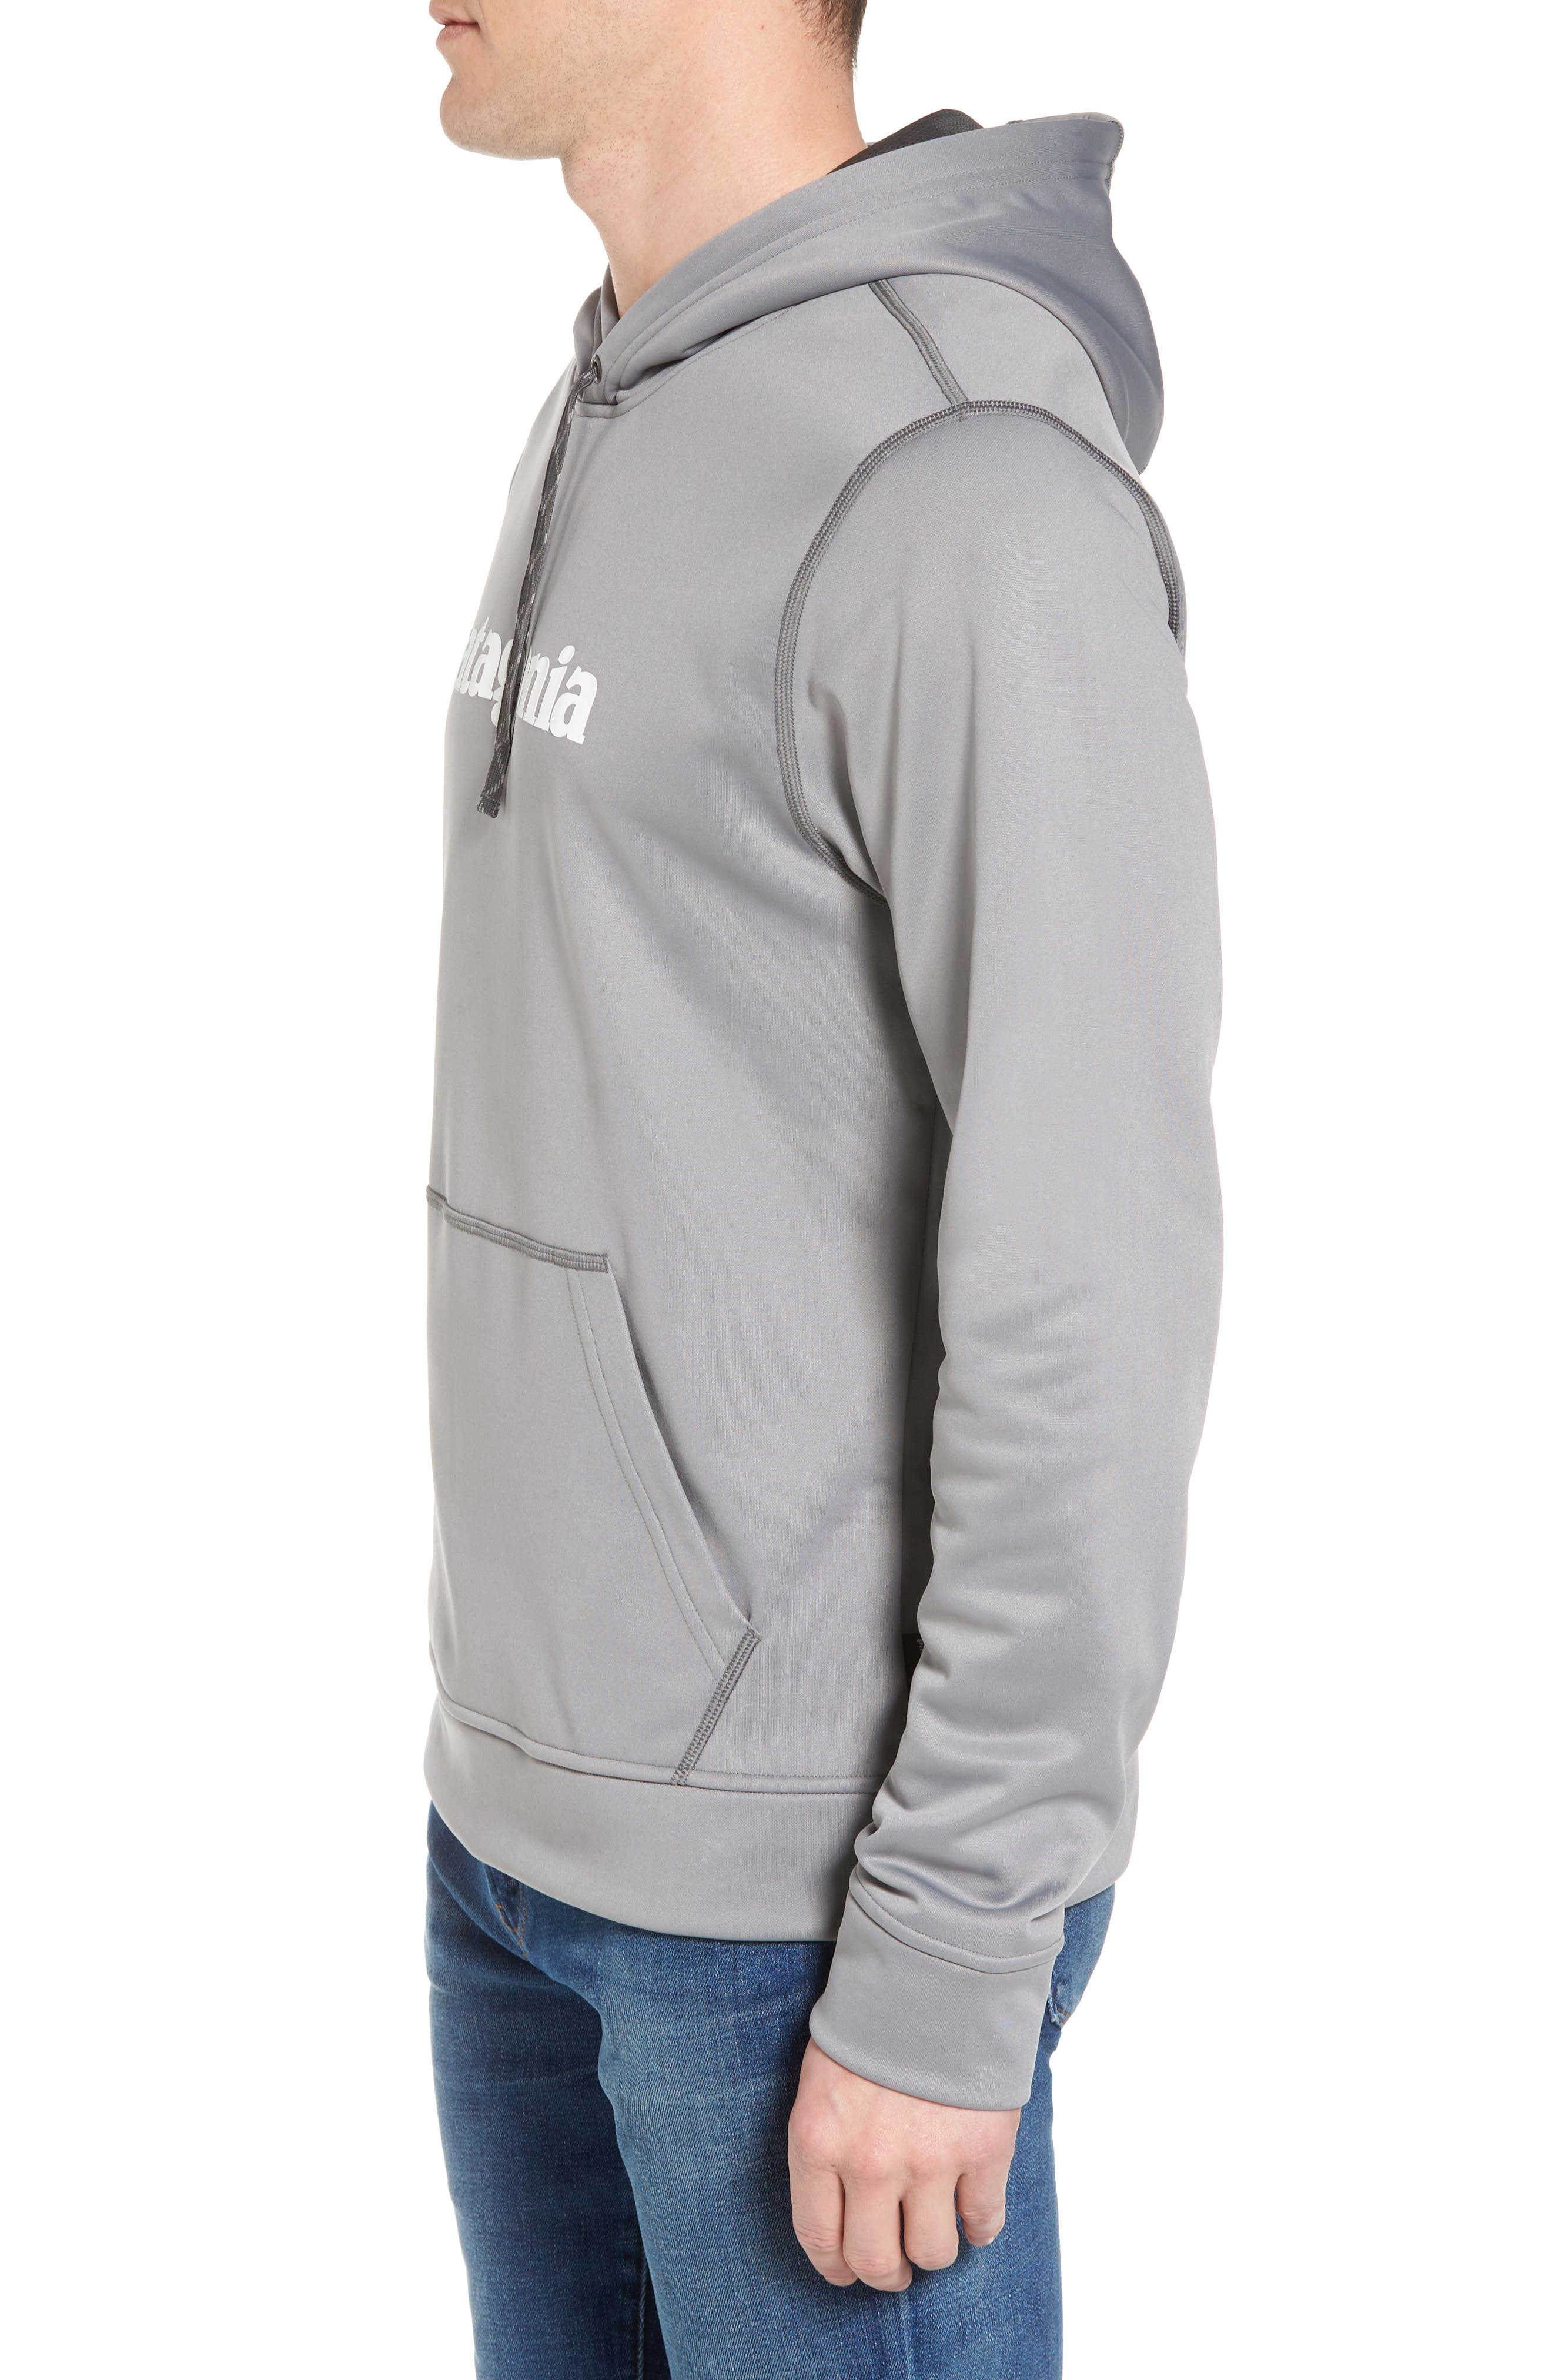 Polycycle Hoodie,                             Alternate thumbnail 3, color,                             Feather Grey/ White